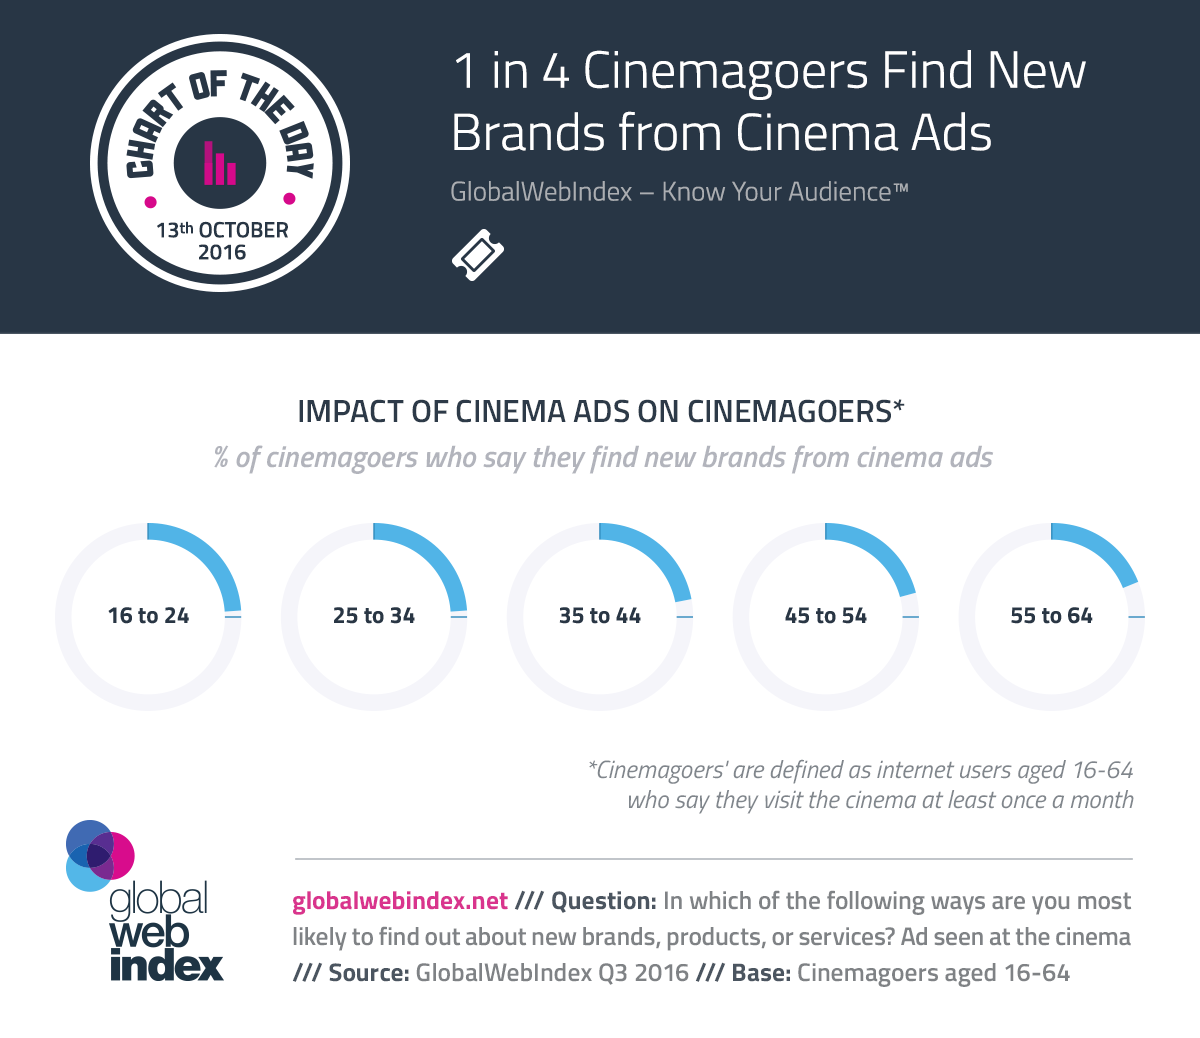 1 in 4 Cinemagoers Find New Brands from Cinema Ads